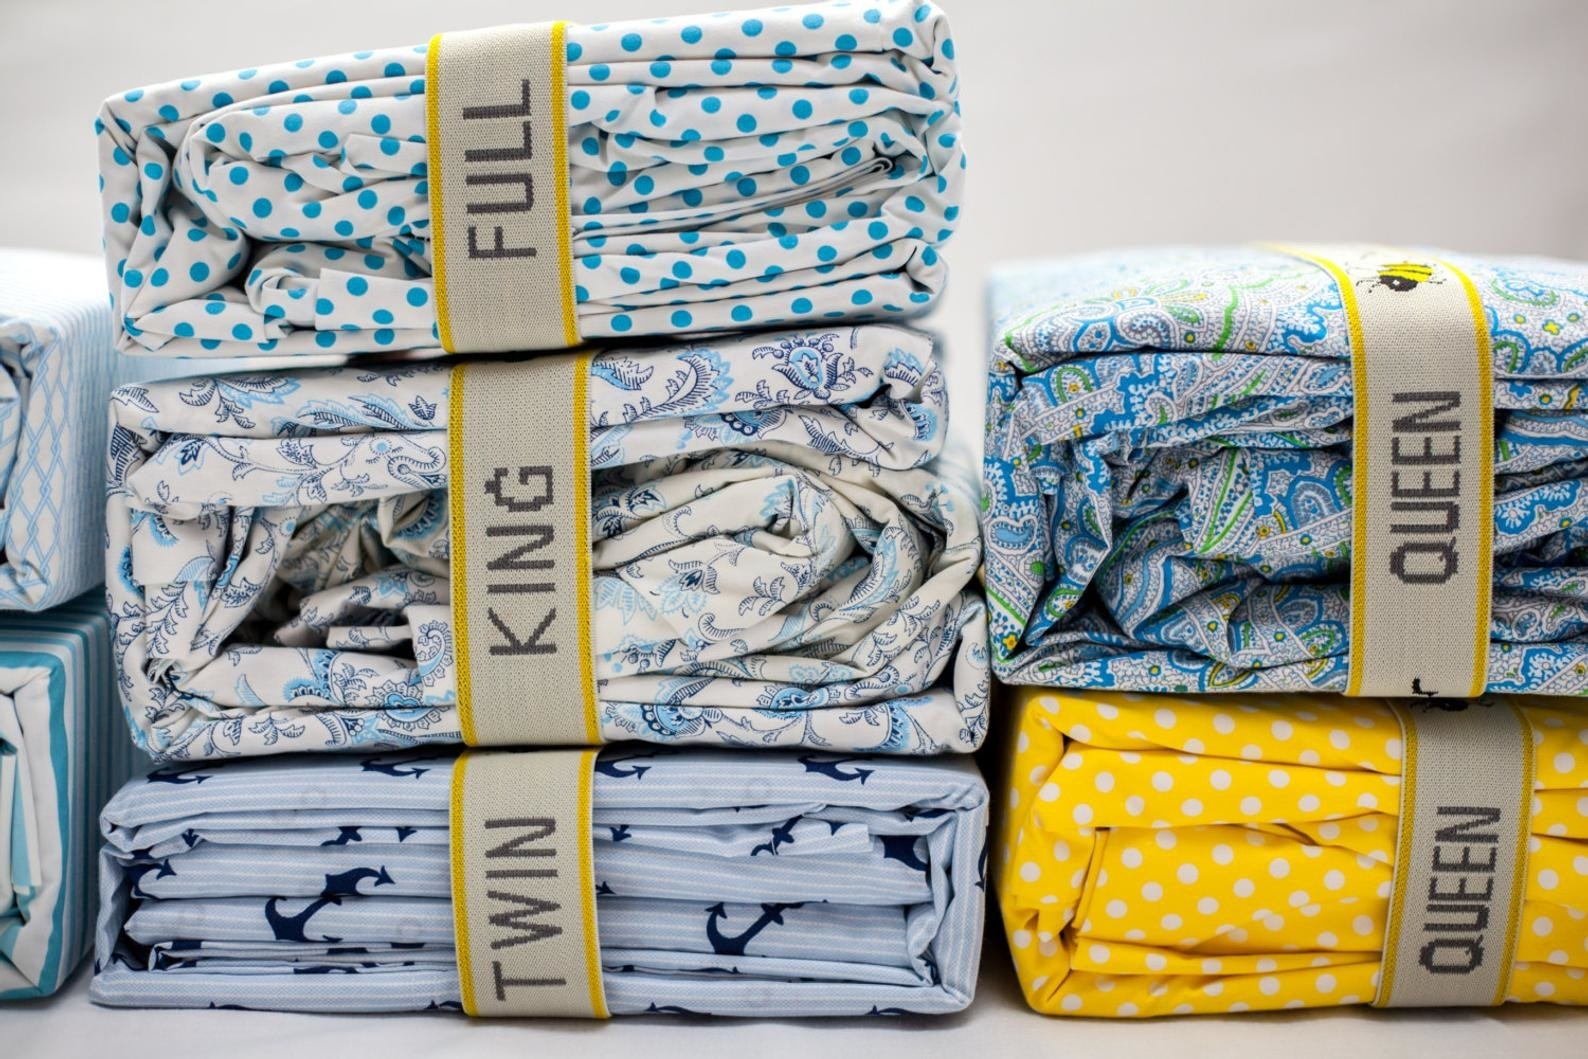 stacks of sheets with yellow and off white bands wrapped around them to keep them orderly